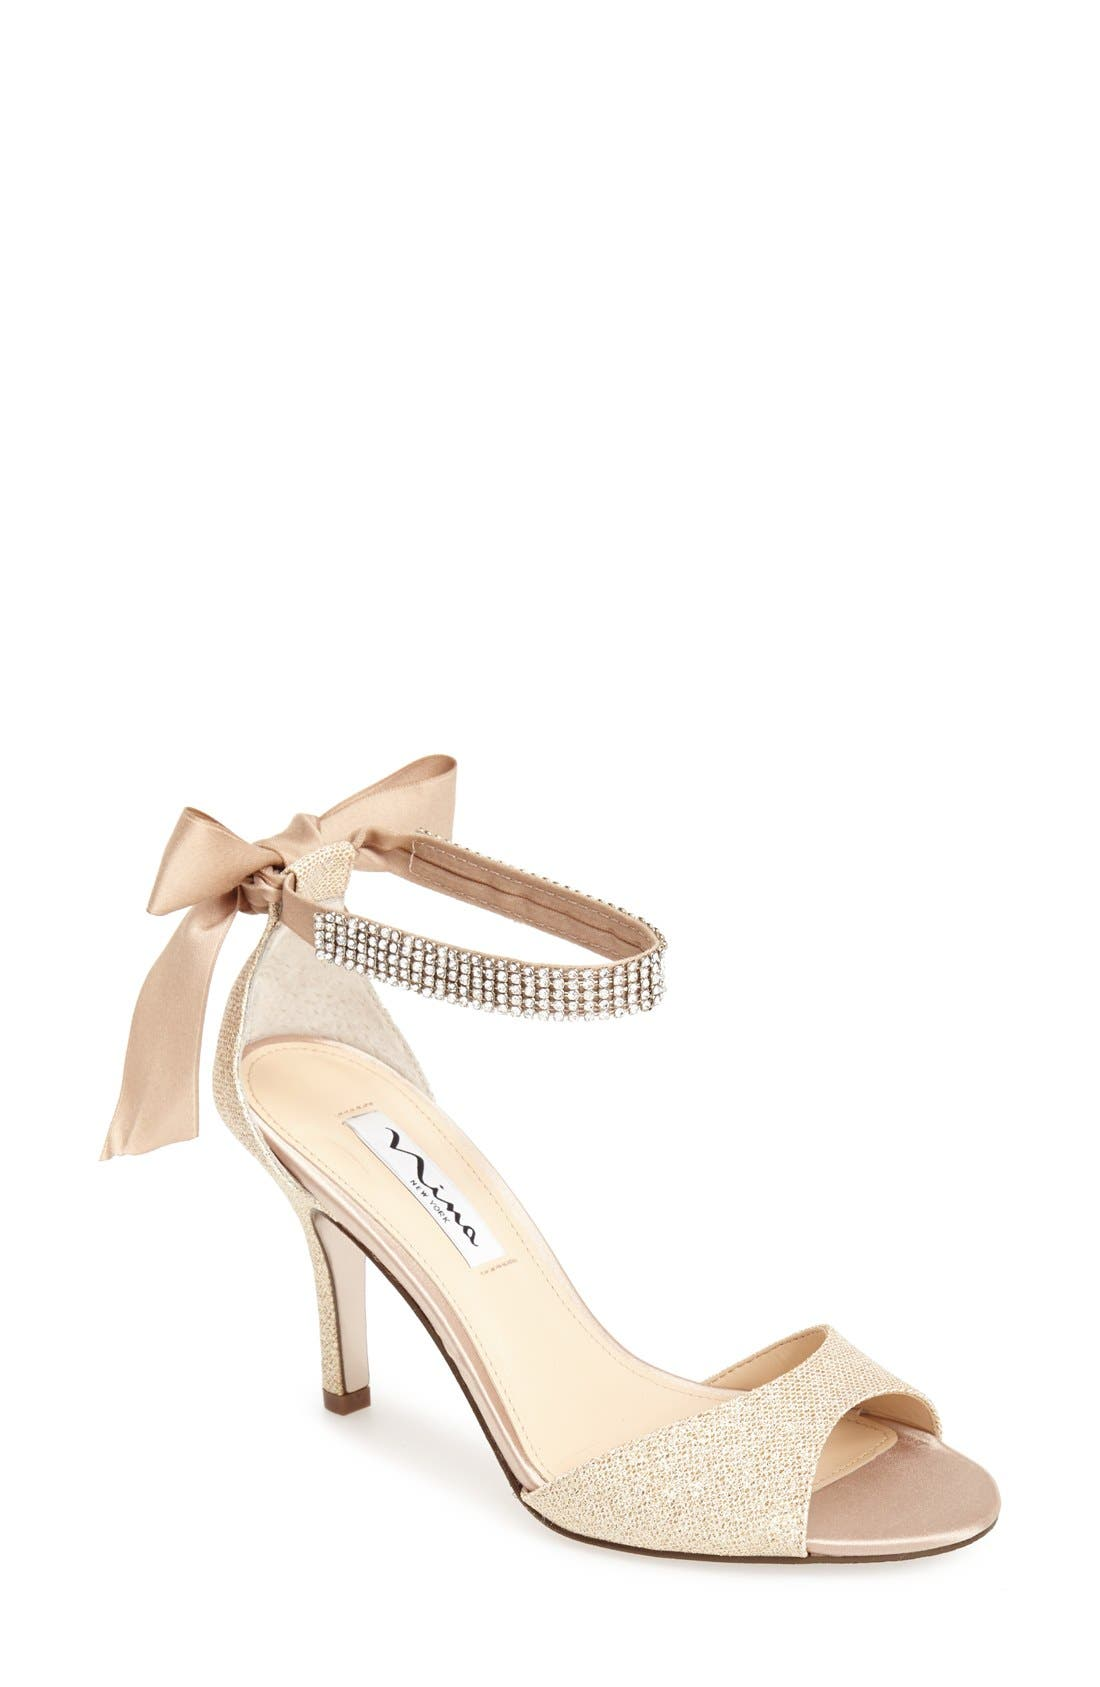 Nina 'Vinnie' Crystal Embellished Ankle Strap Sandal (Women)